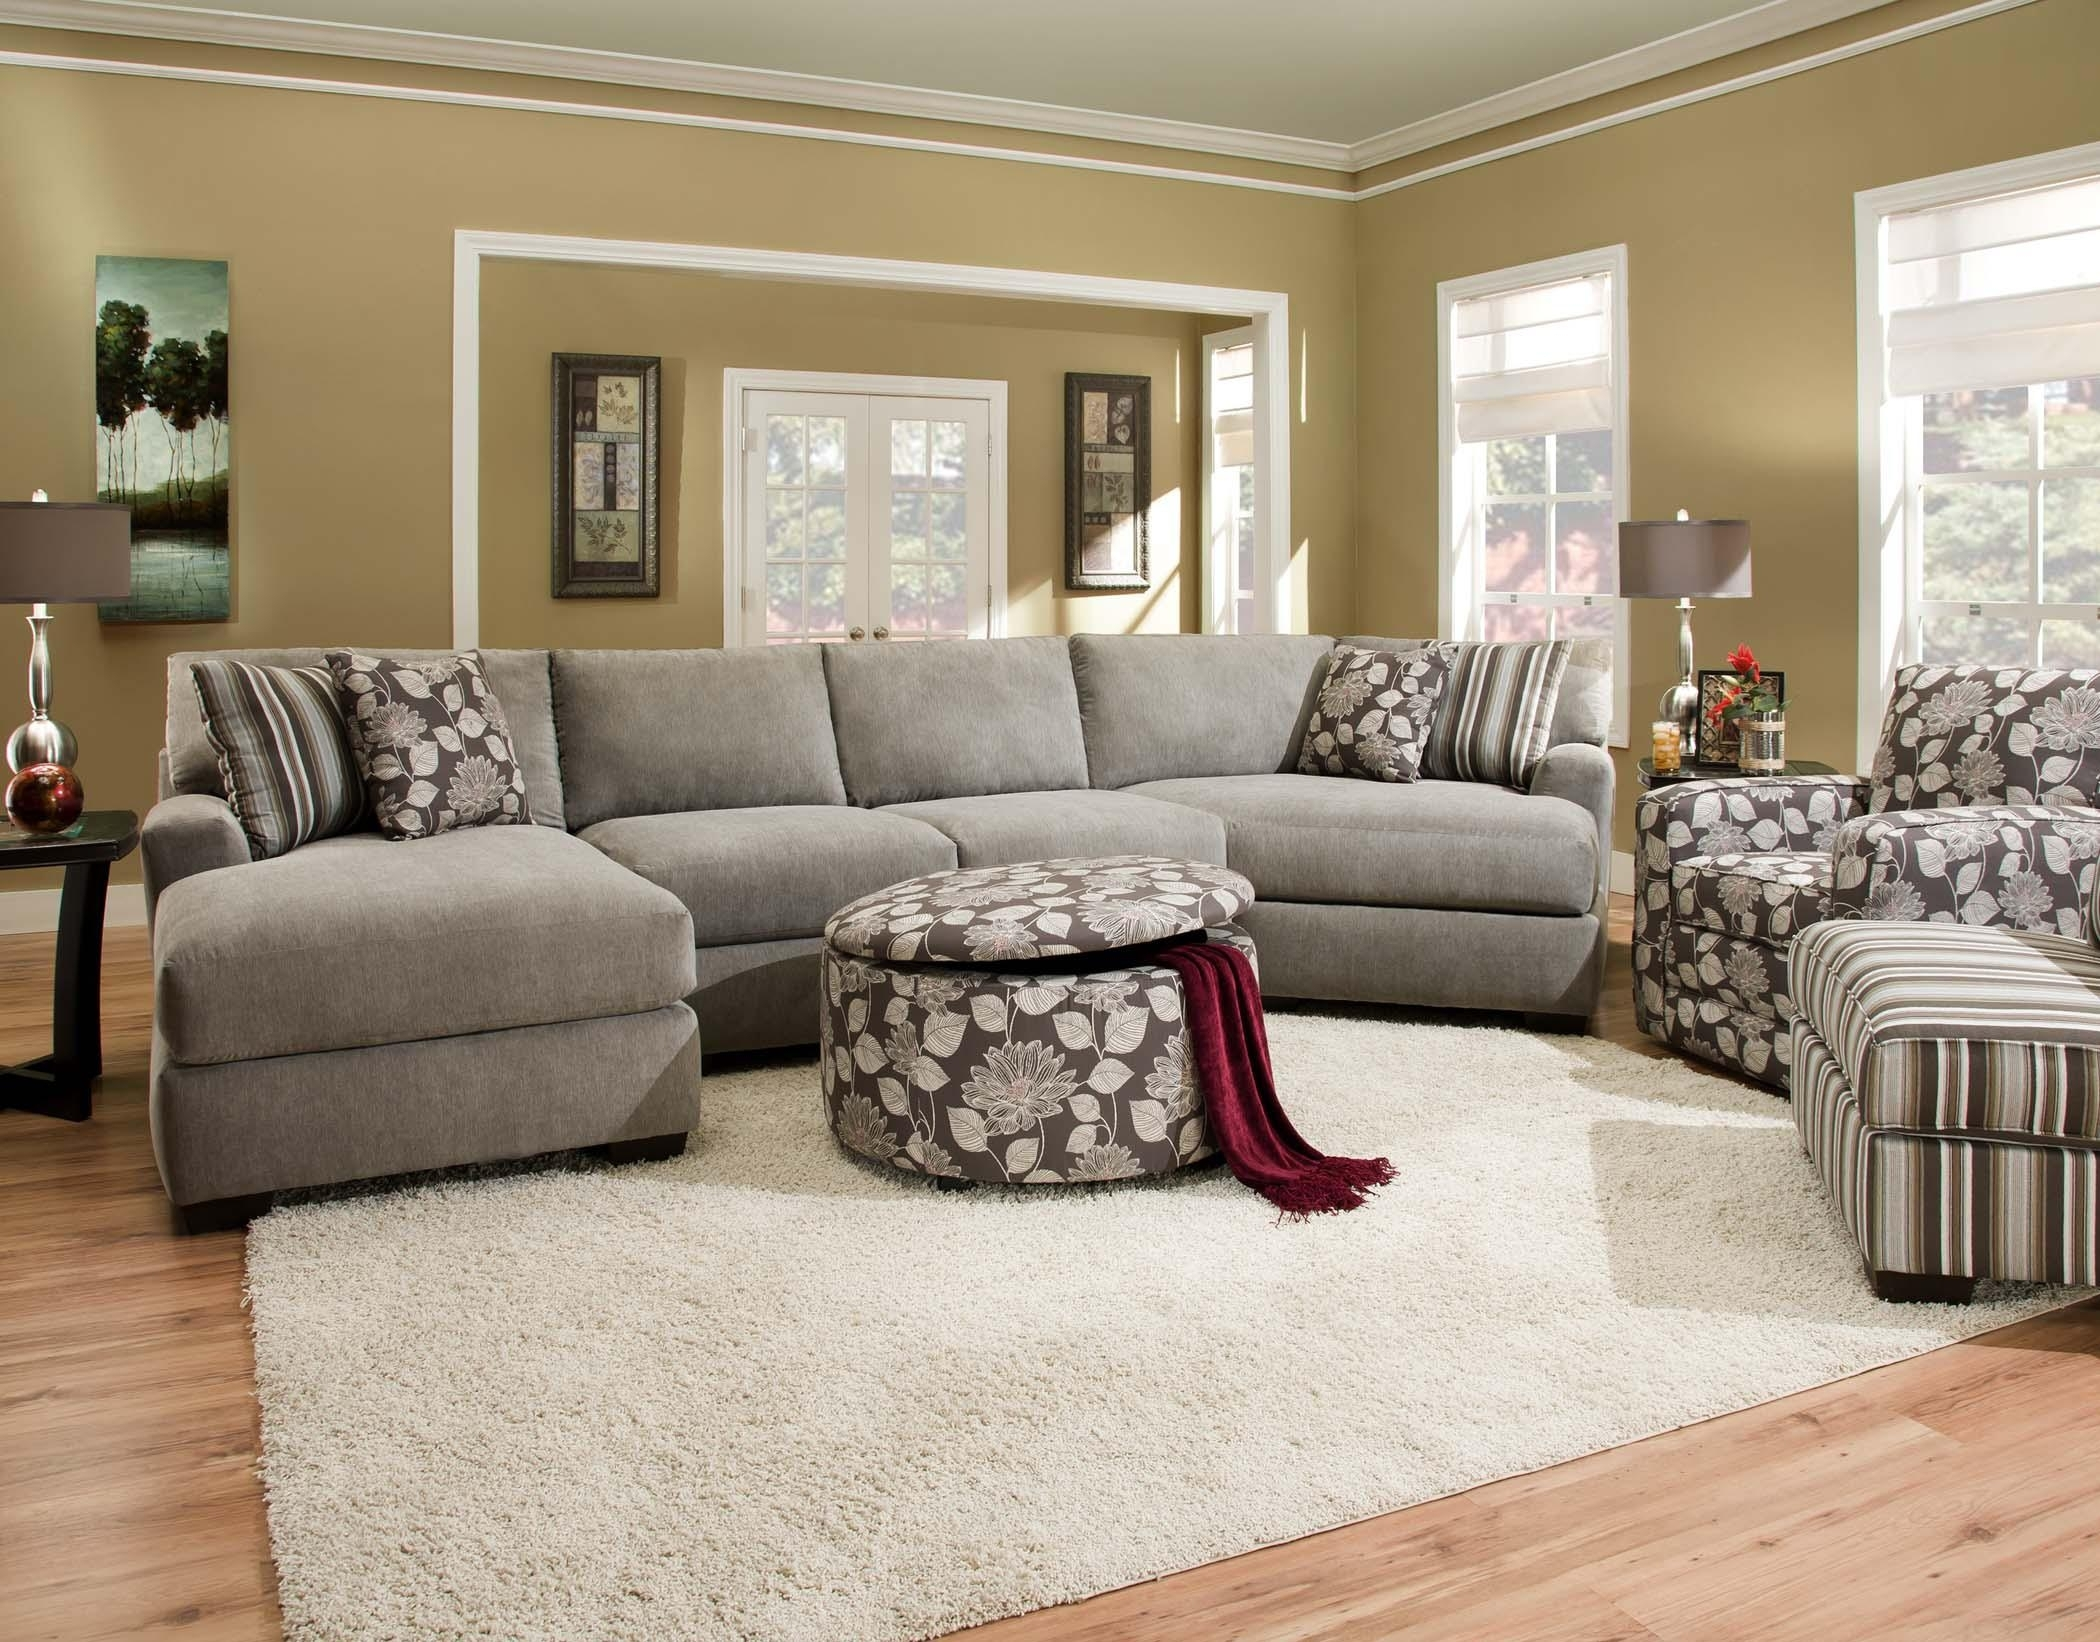 Corinthian 29A0 Sectional Sofa With 4 Seats | Standard Furniture Inside Josephine 2 Piece Sectionals With Laf Sofa (View 9 of 25)